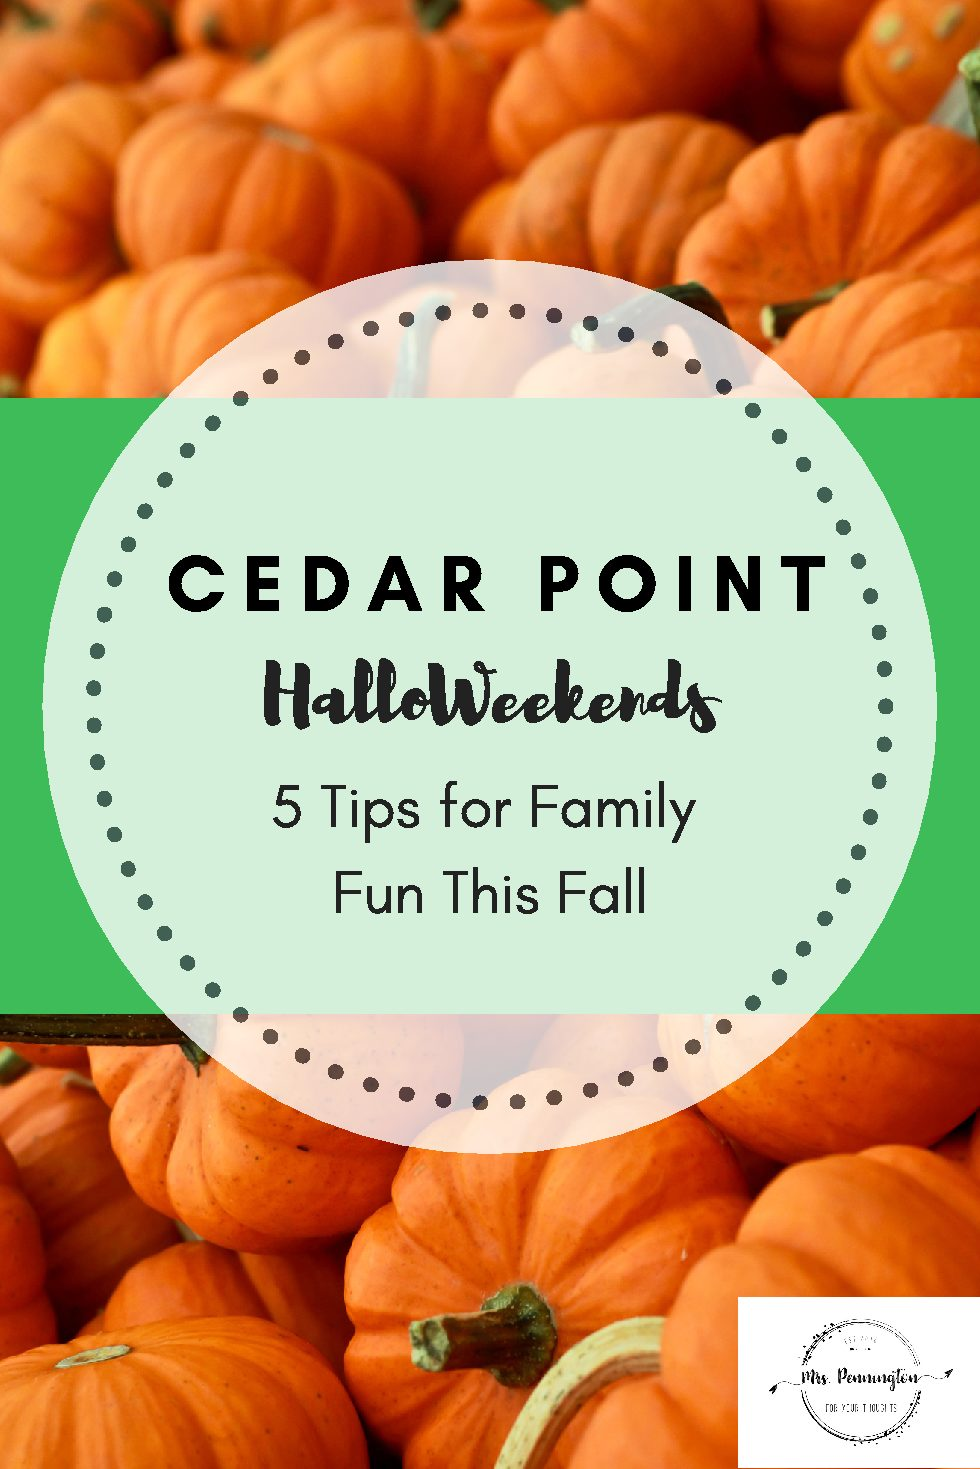 Cedar Point: 5 Fantastic Tips for Family Fun This Fall